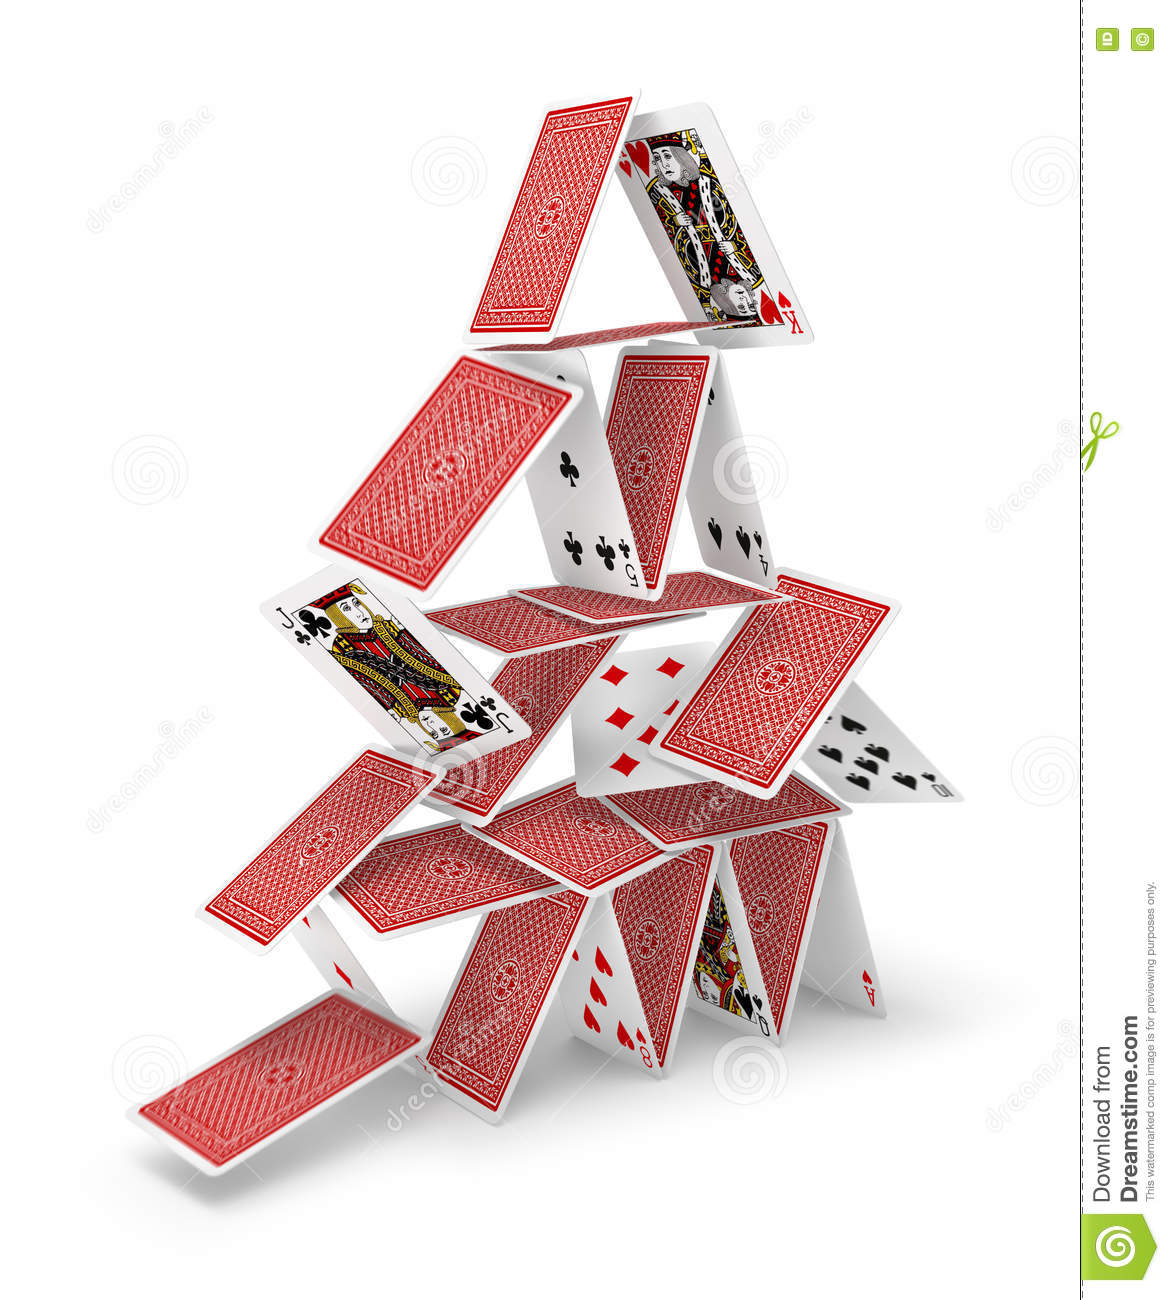 Image result for house of cards collapsing